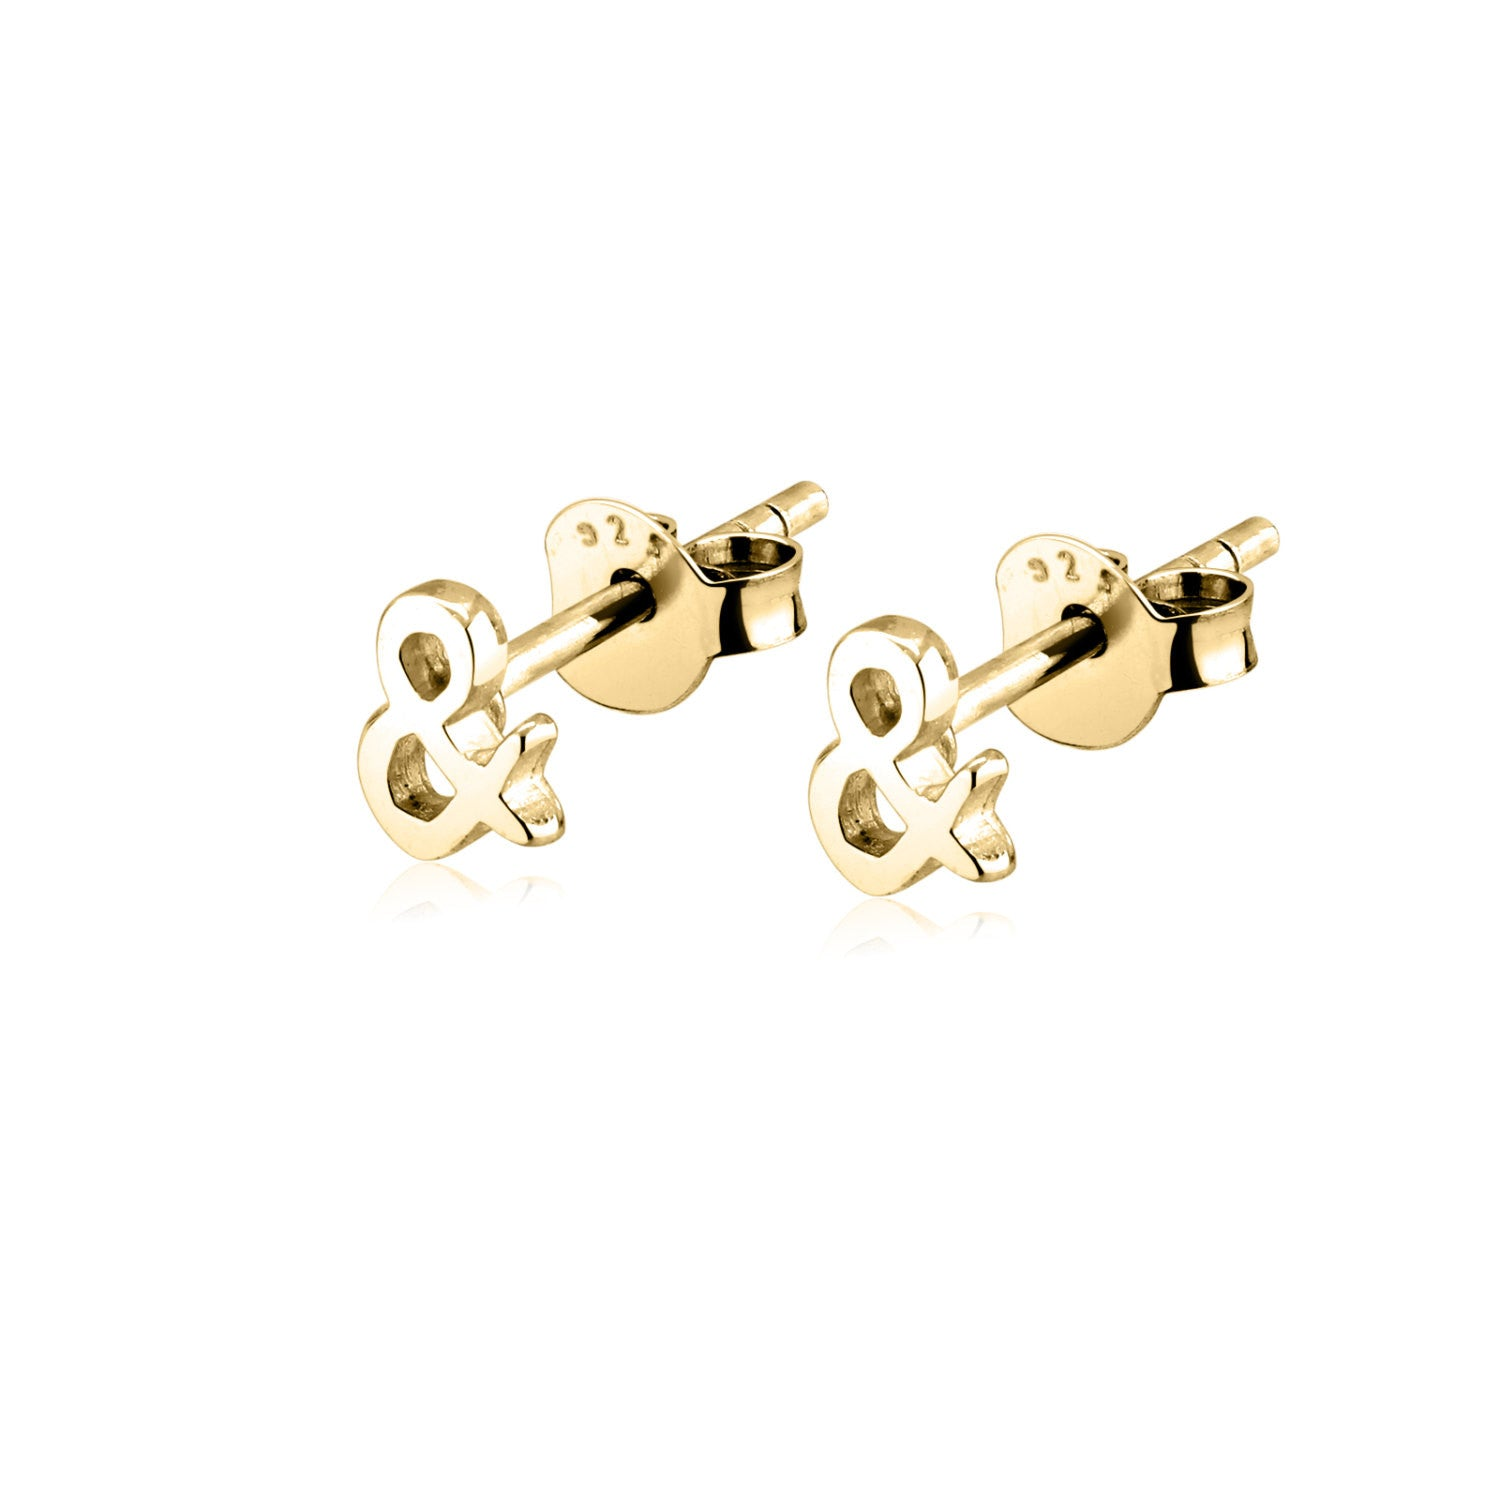 Ampersand Stud 14k Gold Earrings Women Girls